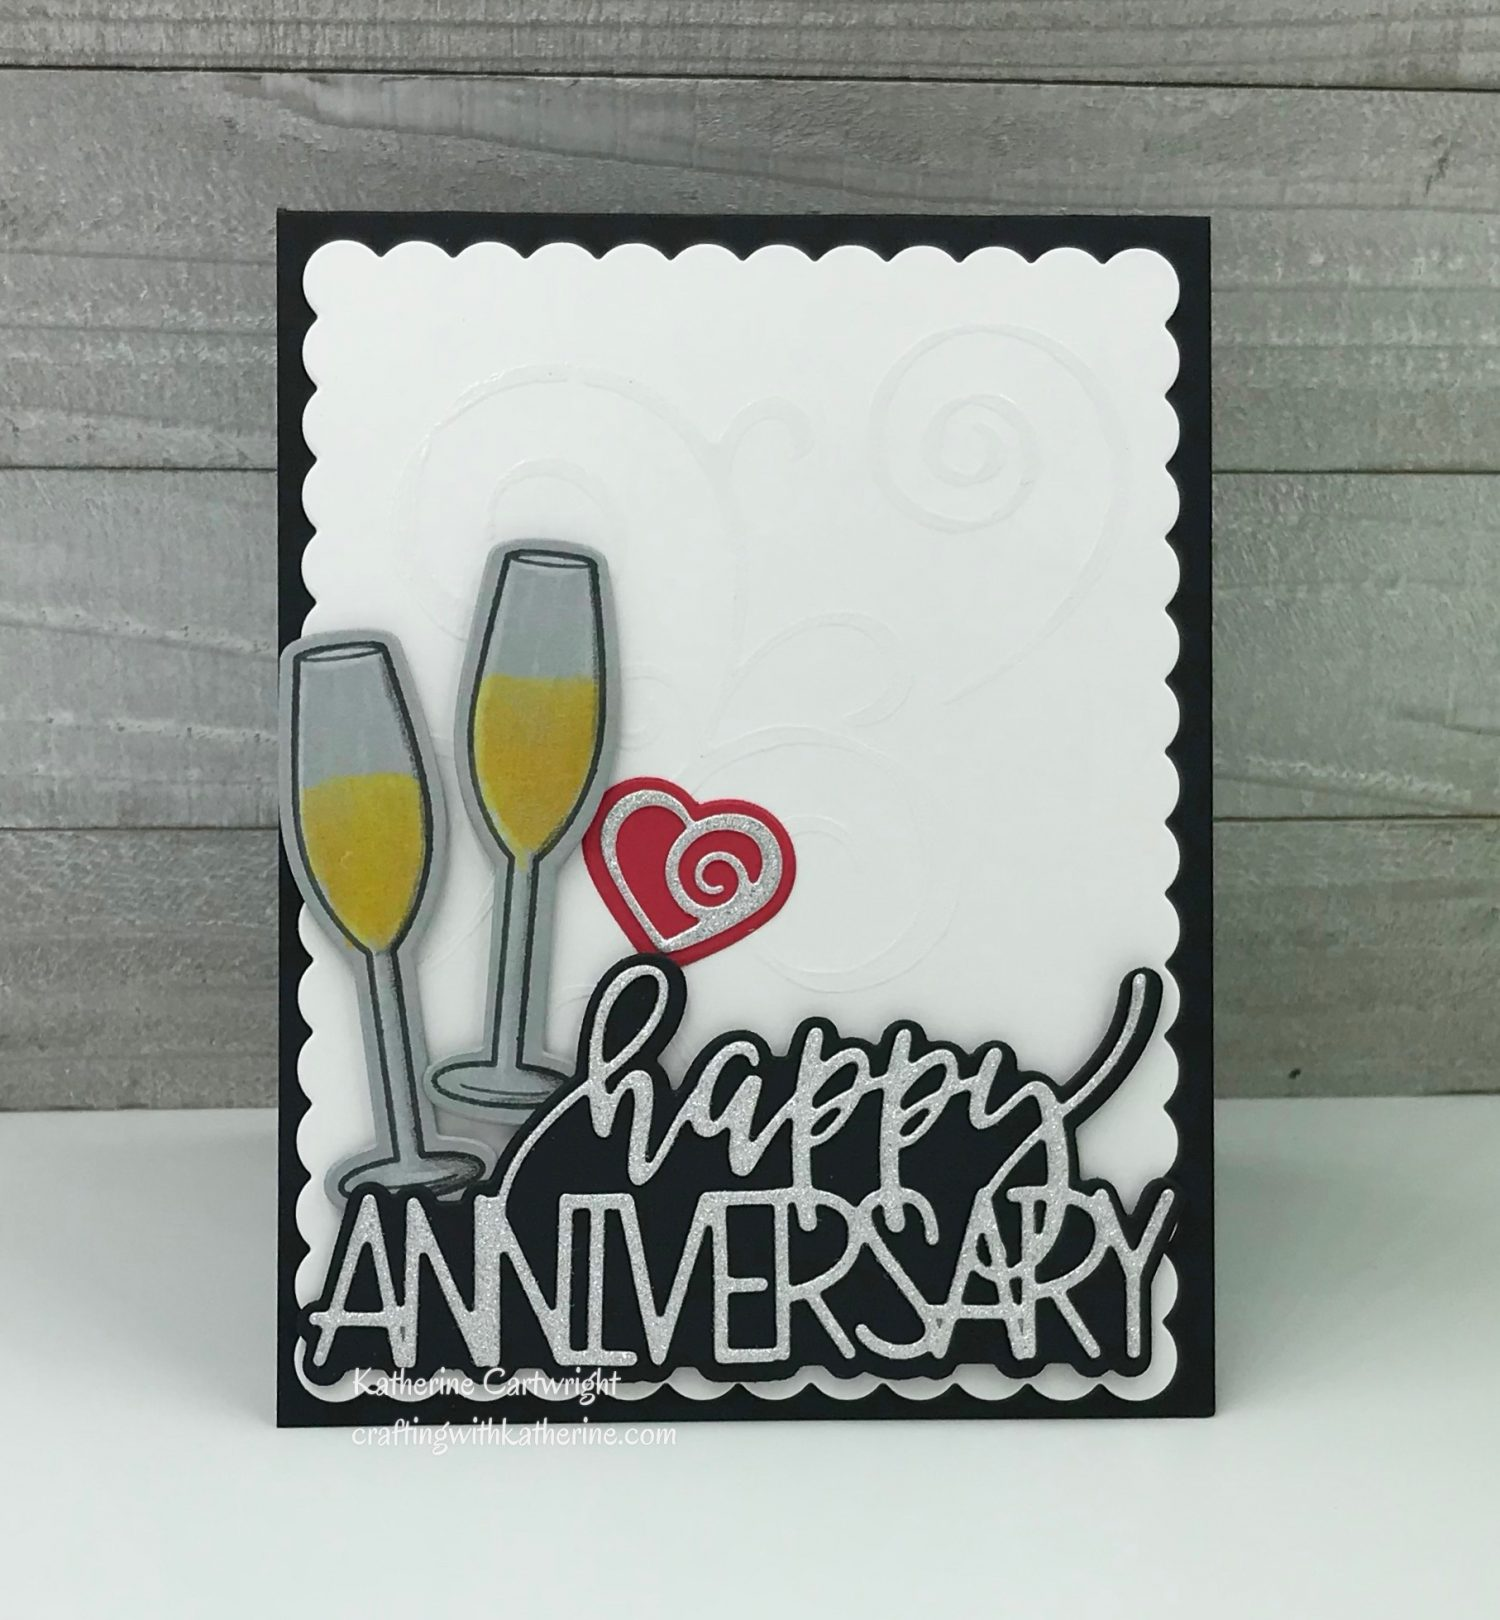 Trendy Happy Anniversary featuring The Stamps of Life